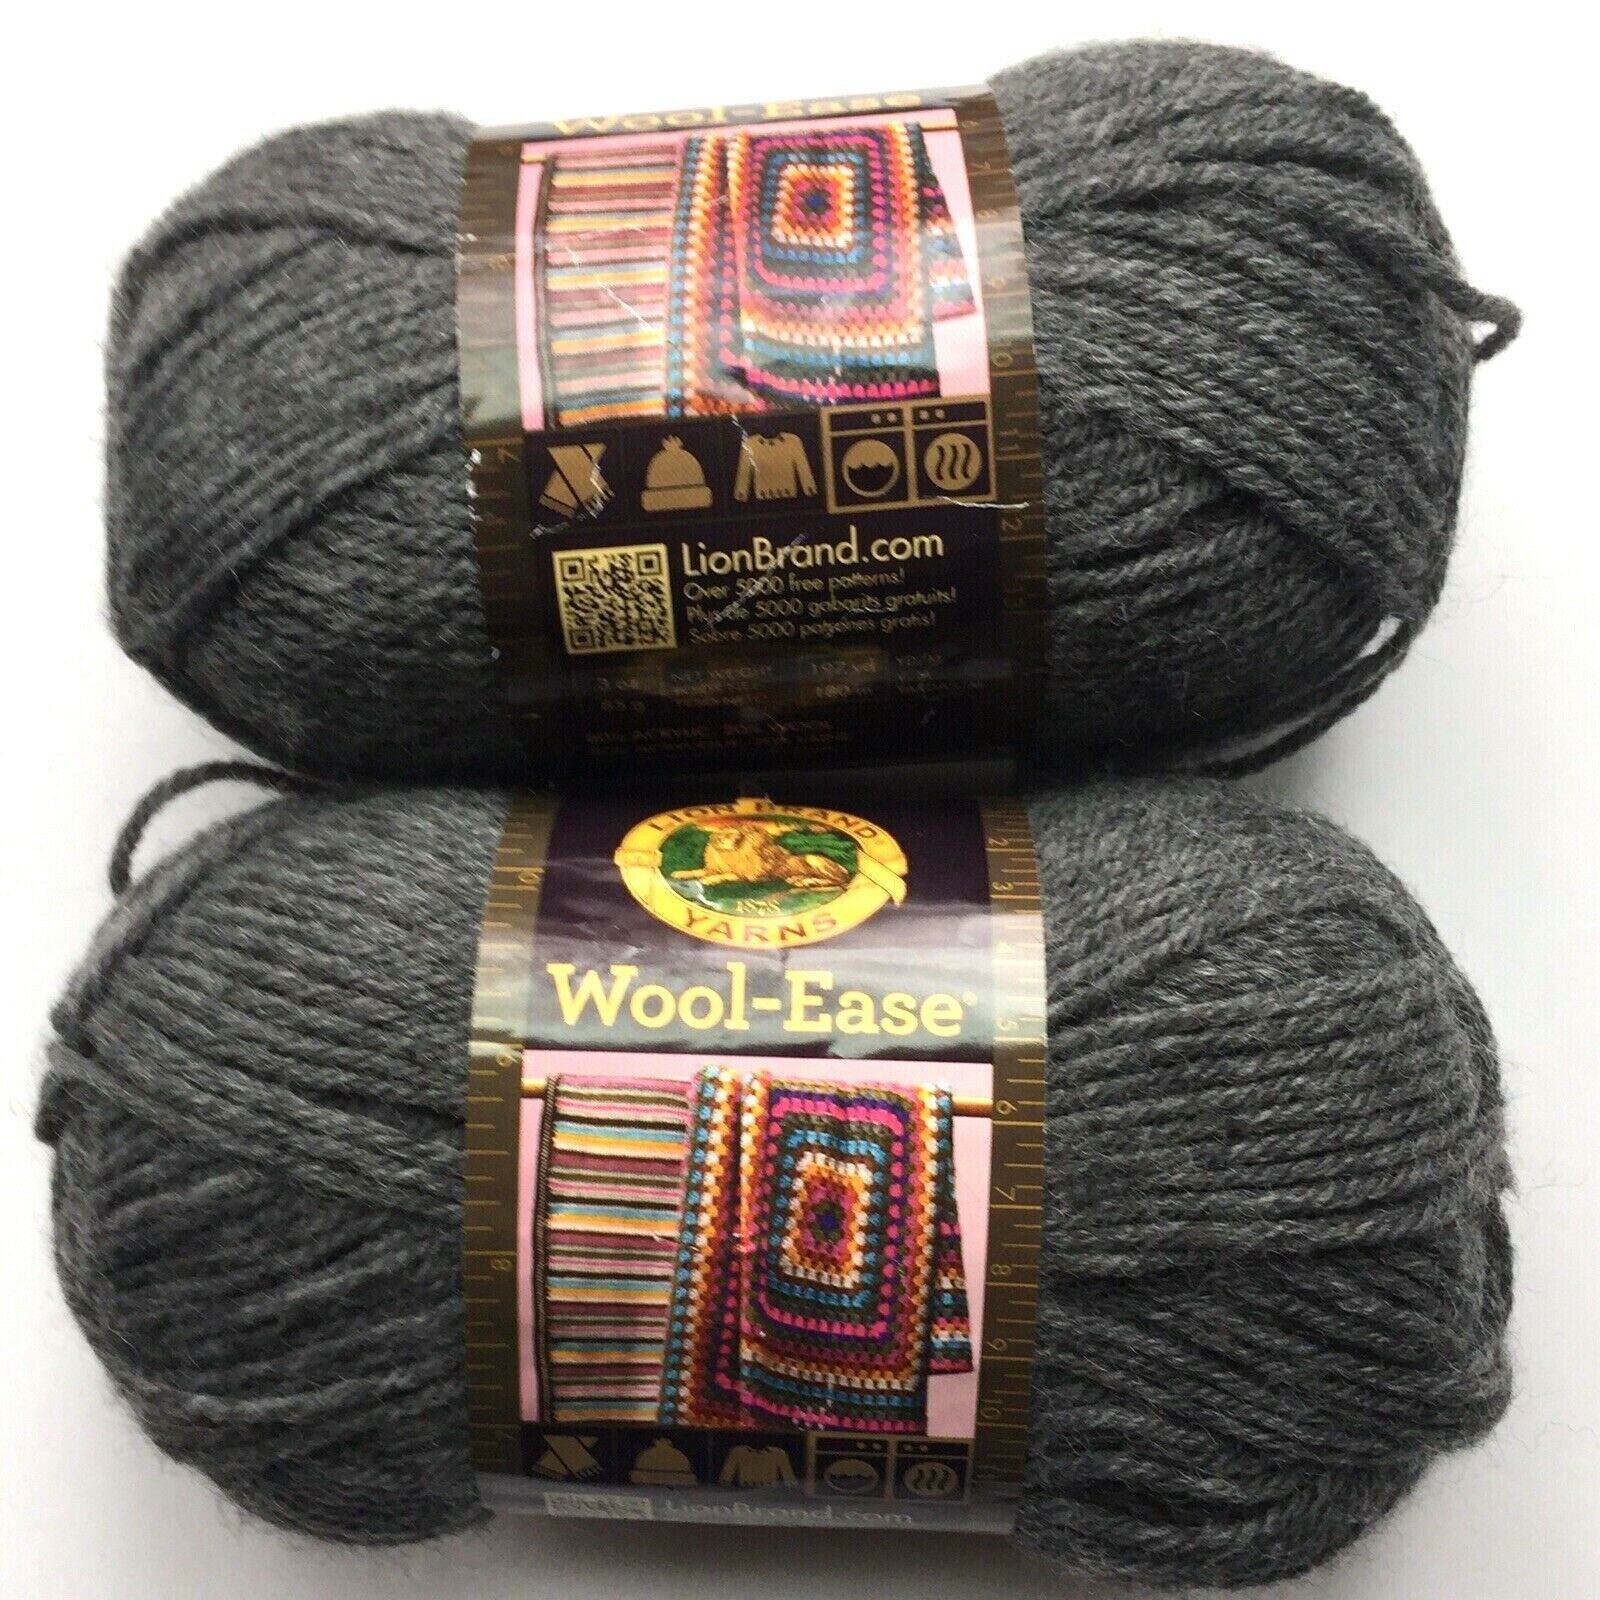 Premier Yarn Cotton Fair Solid Yarn Pack of 3 Turquoise